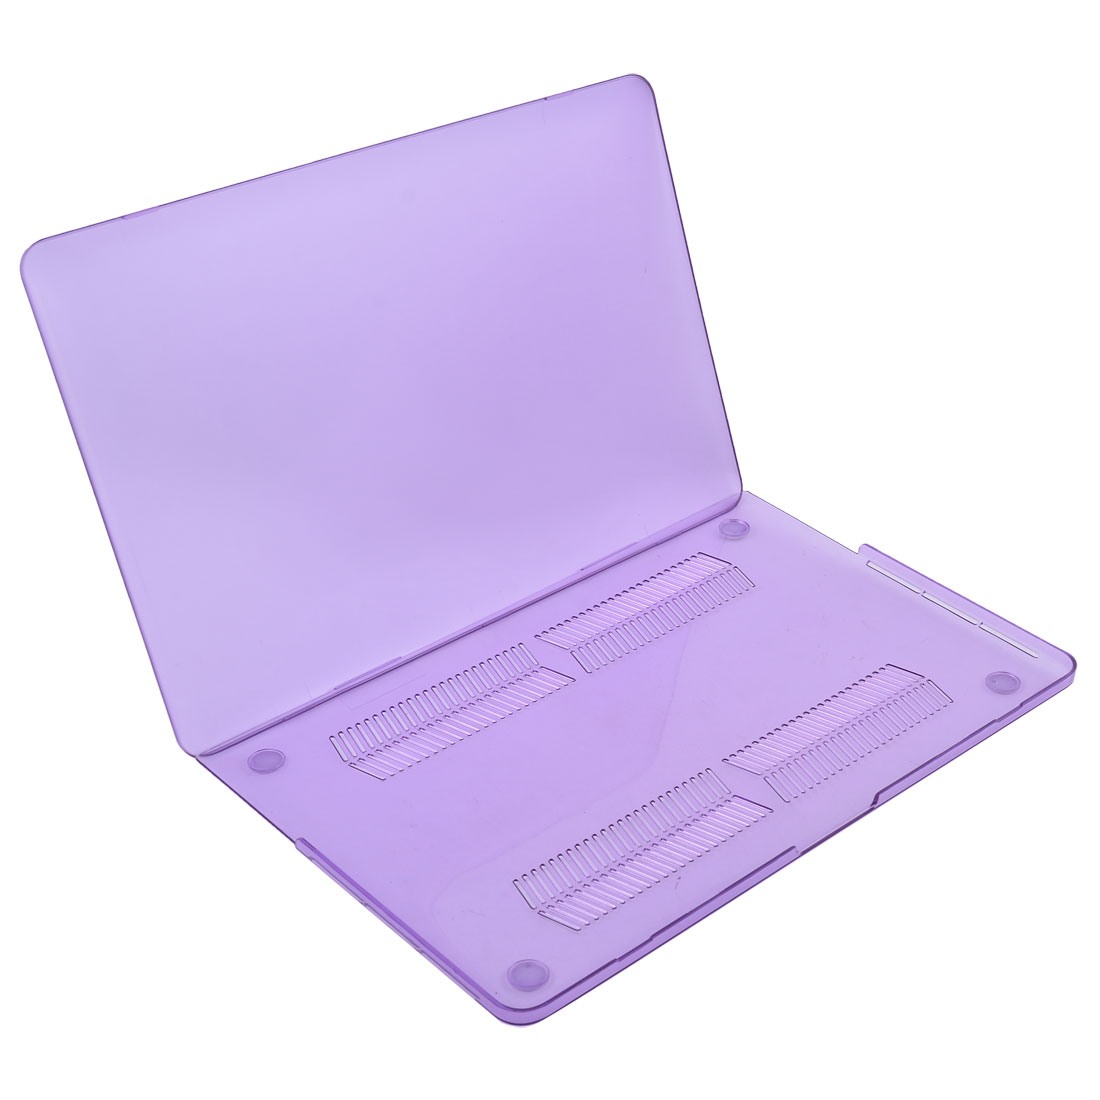 Plastic Matte Frosted Loptop Hard Case Bag Purple for Macbook Pro Retina 15 Inch